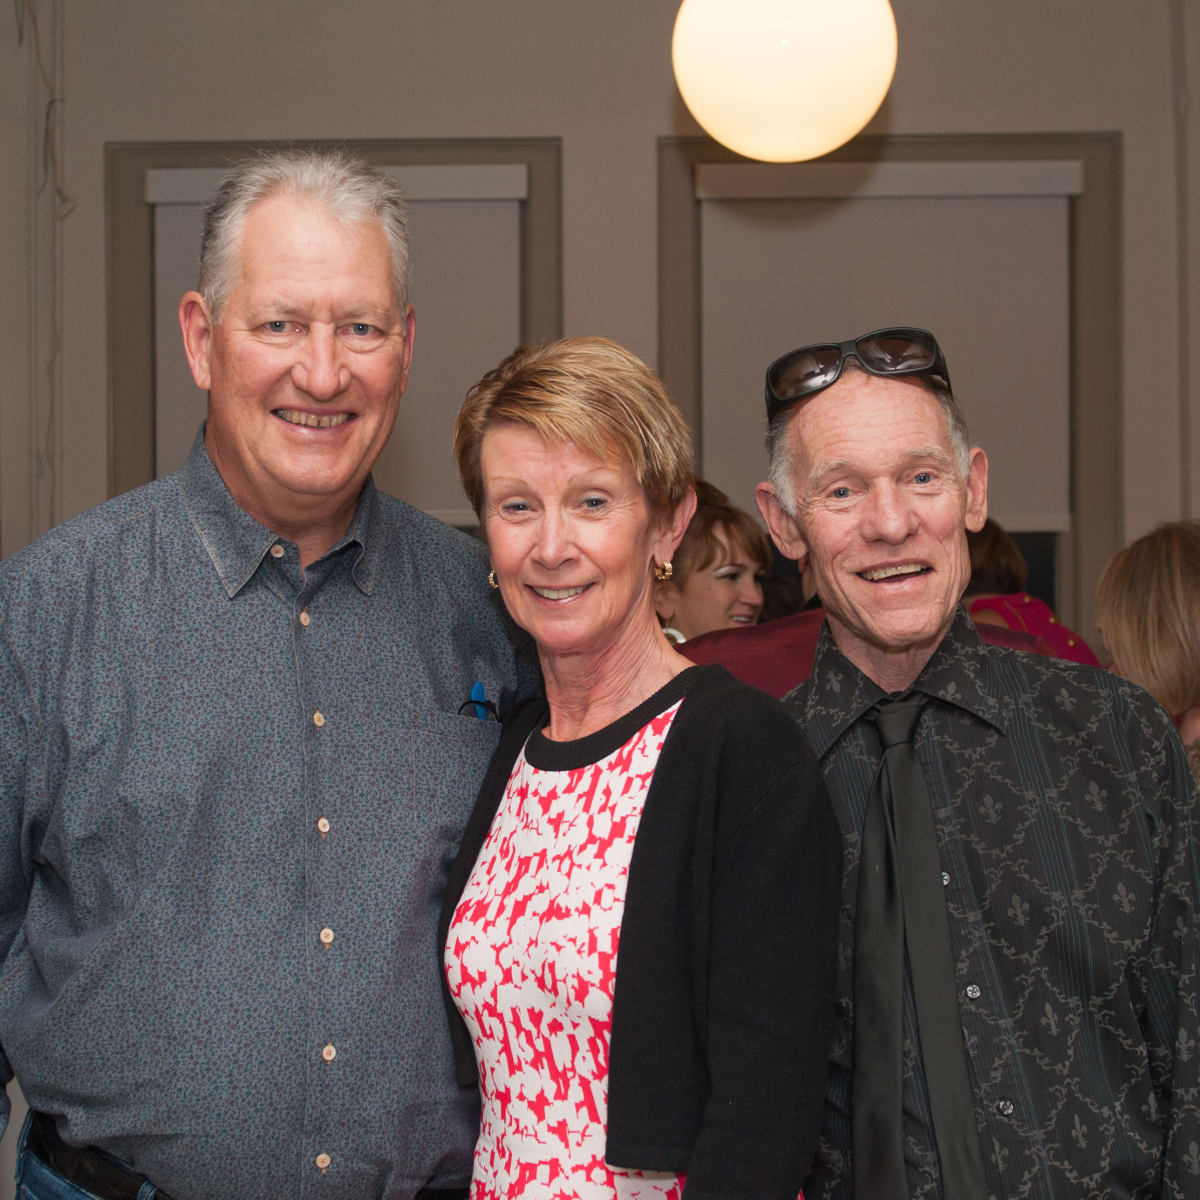 Steve Suellentrop, Betty Suellentrop, Bill Lengfelder